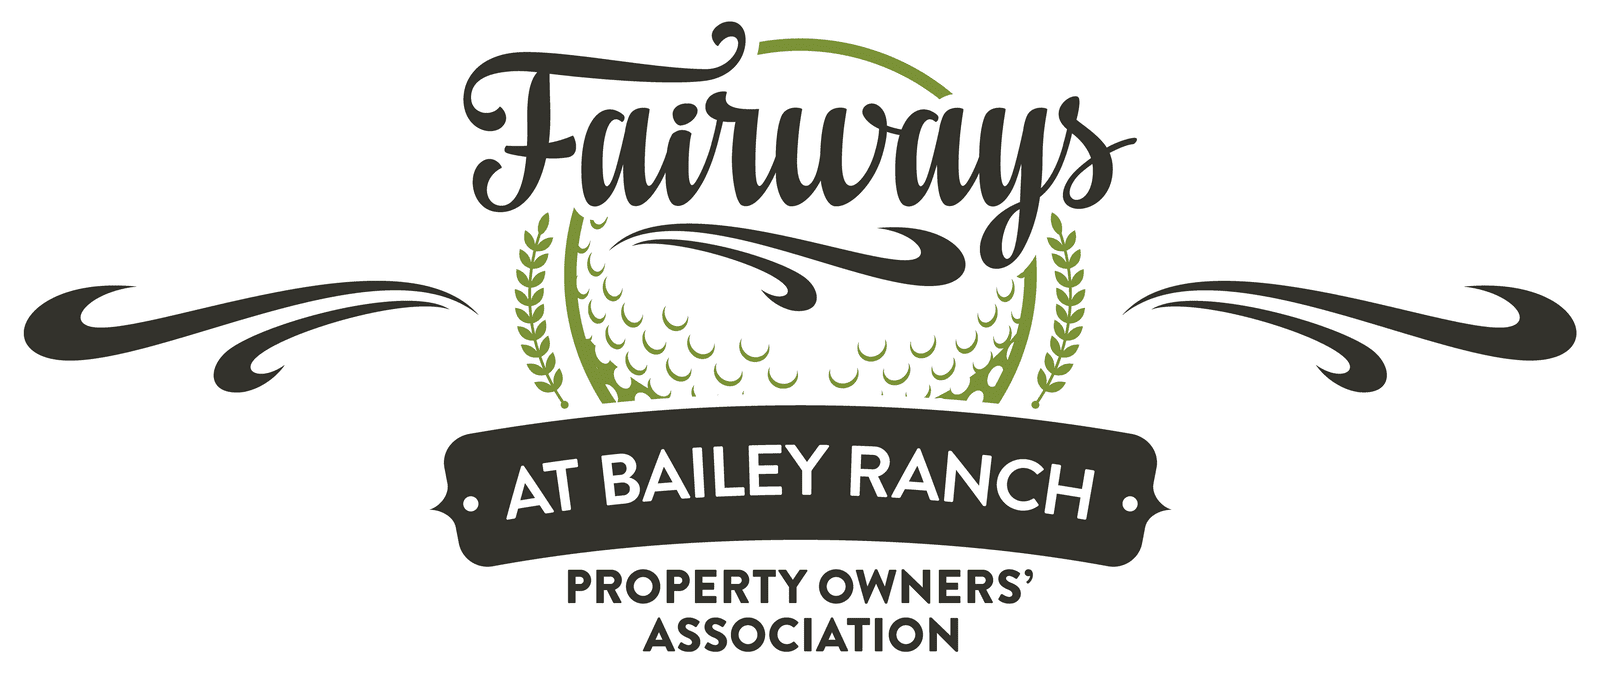 Fairways at Bailey Ranch